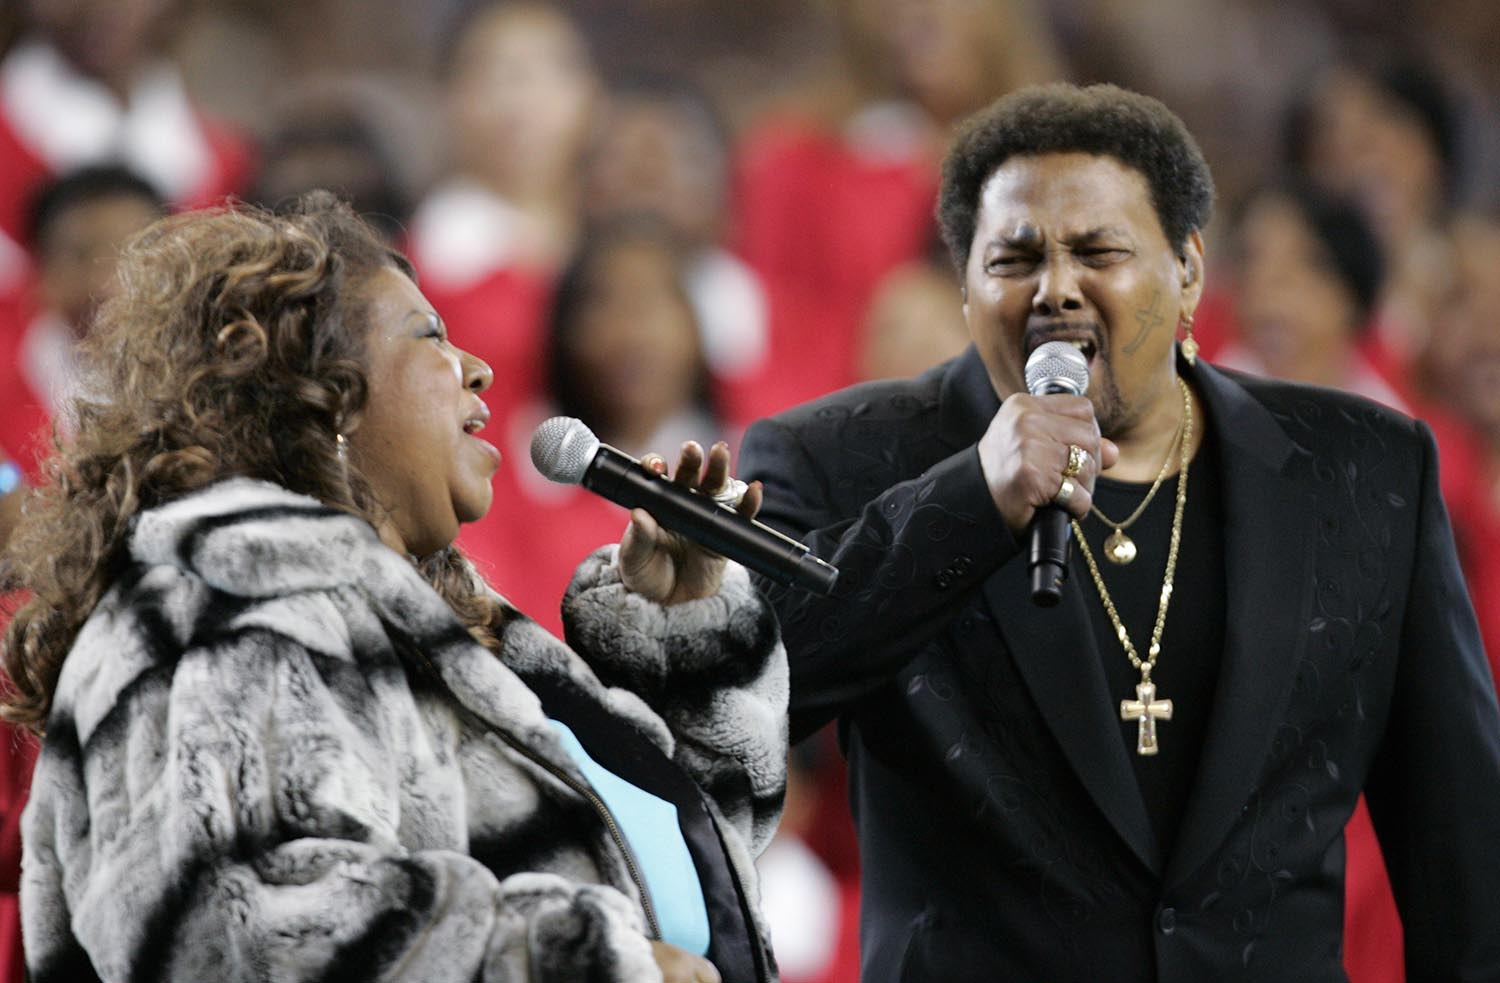 "<div class=""meta image-caption""><div class=""origin-logo origin-image ap""><span>AP</span></div><span class=""caption-text"">2006: Singers Aaron Neville and Aretha Franklin perform the national anthem before the Super Bowl XL football game Sunday, Feb. 5, 2006, in Detroit. (AP Photo/David J. Phillip)</span></div>"